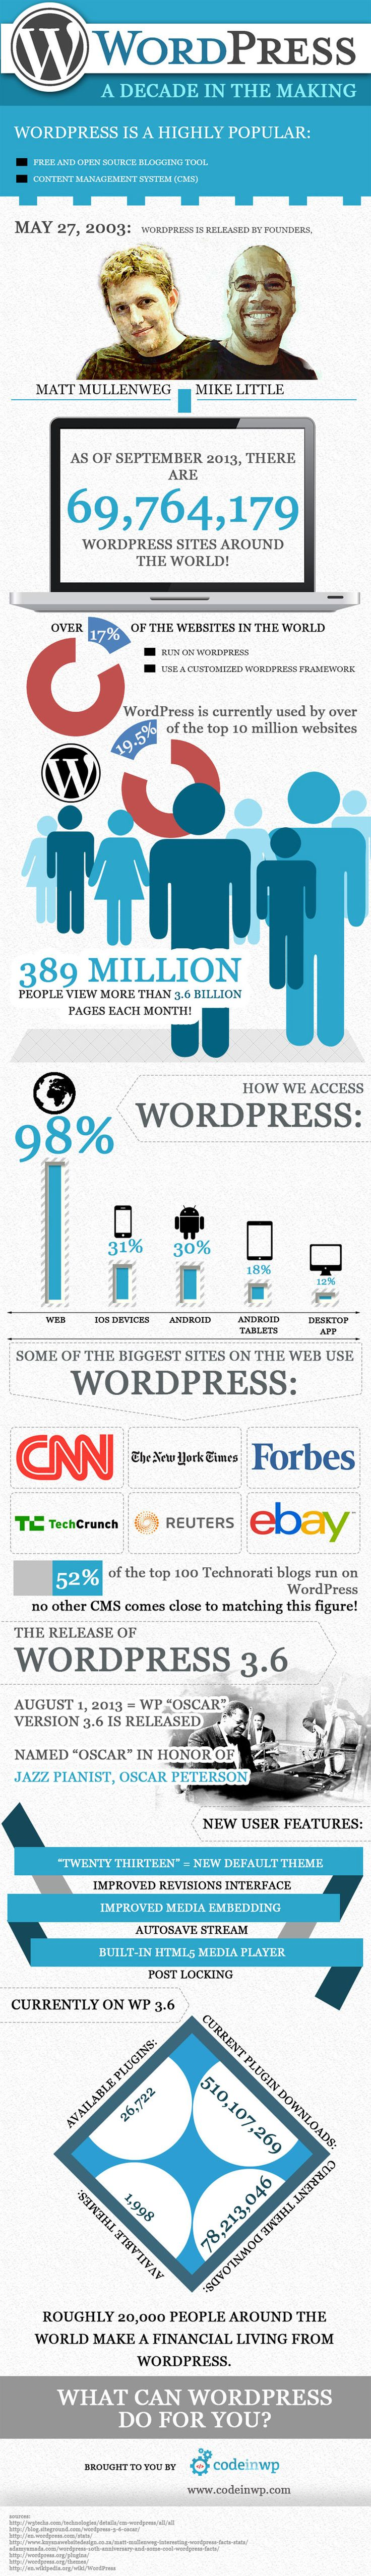 WordPress: a Decade in the Making, an infographic - http://hosting.ber-art.nl/wordpress-a-decade-in-the-making-an-infographic /@Roberta Causarano Cruz Malonda|Art Visual Design V.O.F. - #SEO